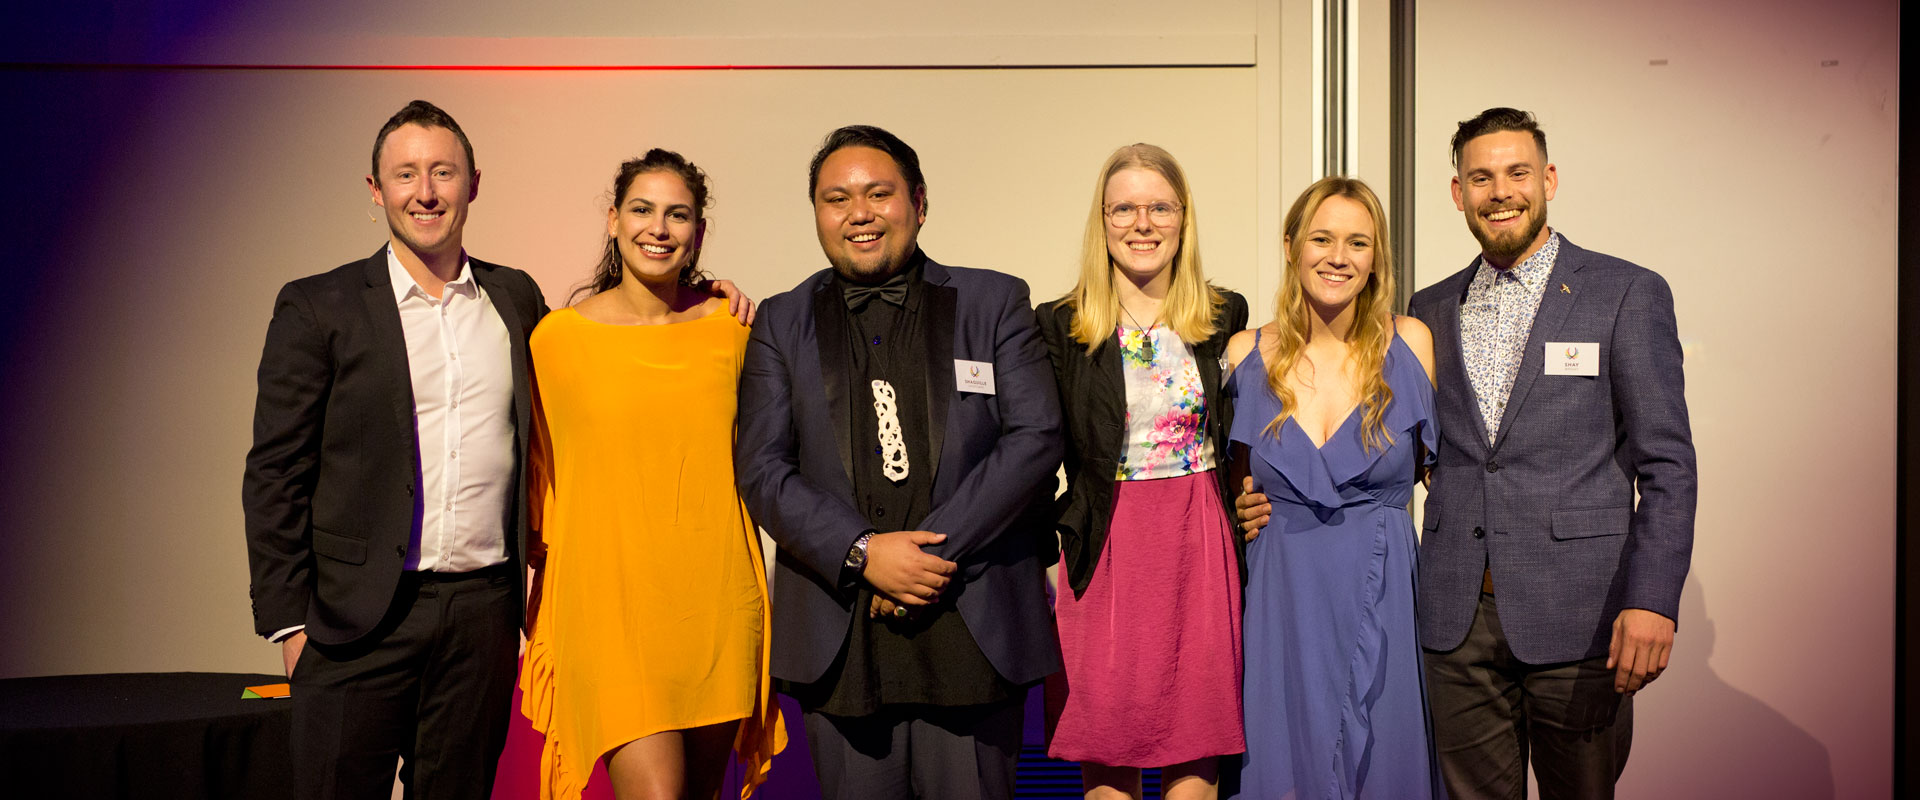 Pictured from left : Guy Ryan, CEO & Founder of Inspiring Stories and The Impact Awards; Jacinta Gulasekharam – winner of the Evolve Leadership Summit scholarship; Shaquille Shortland, CEO of Tuapapa Māori Language Academy & Consultancy – winner of the Inclusion Award; Sophie Handford, National Coordinator School Strikes 4 Climate – winner of the Climate Award; Jazz Thornton, CEO of Voices of Hope – winner of the Wellbeing Award; and Shay Wright – Co-founder of Te Whare Hukahuka – winner of the Impact Award for Enterprise.